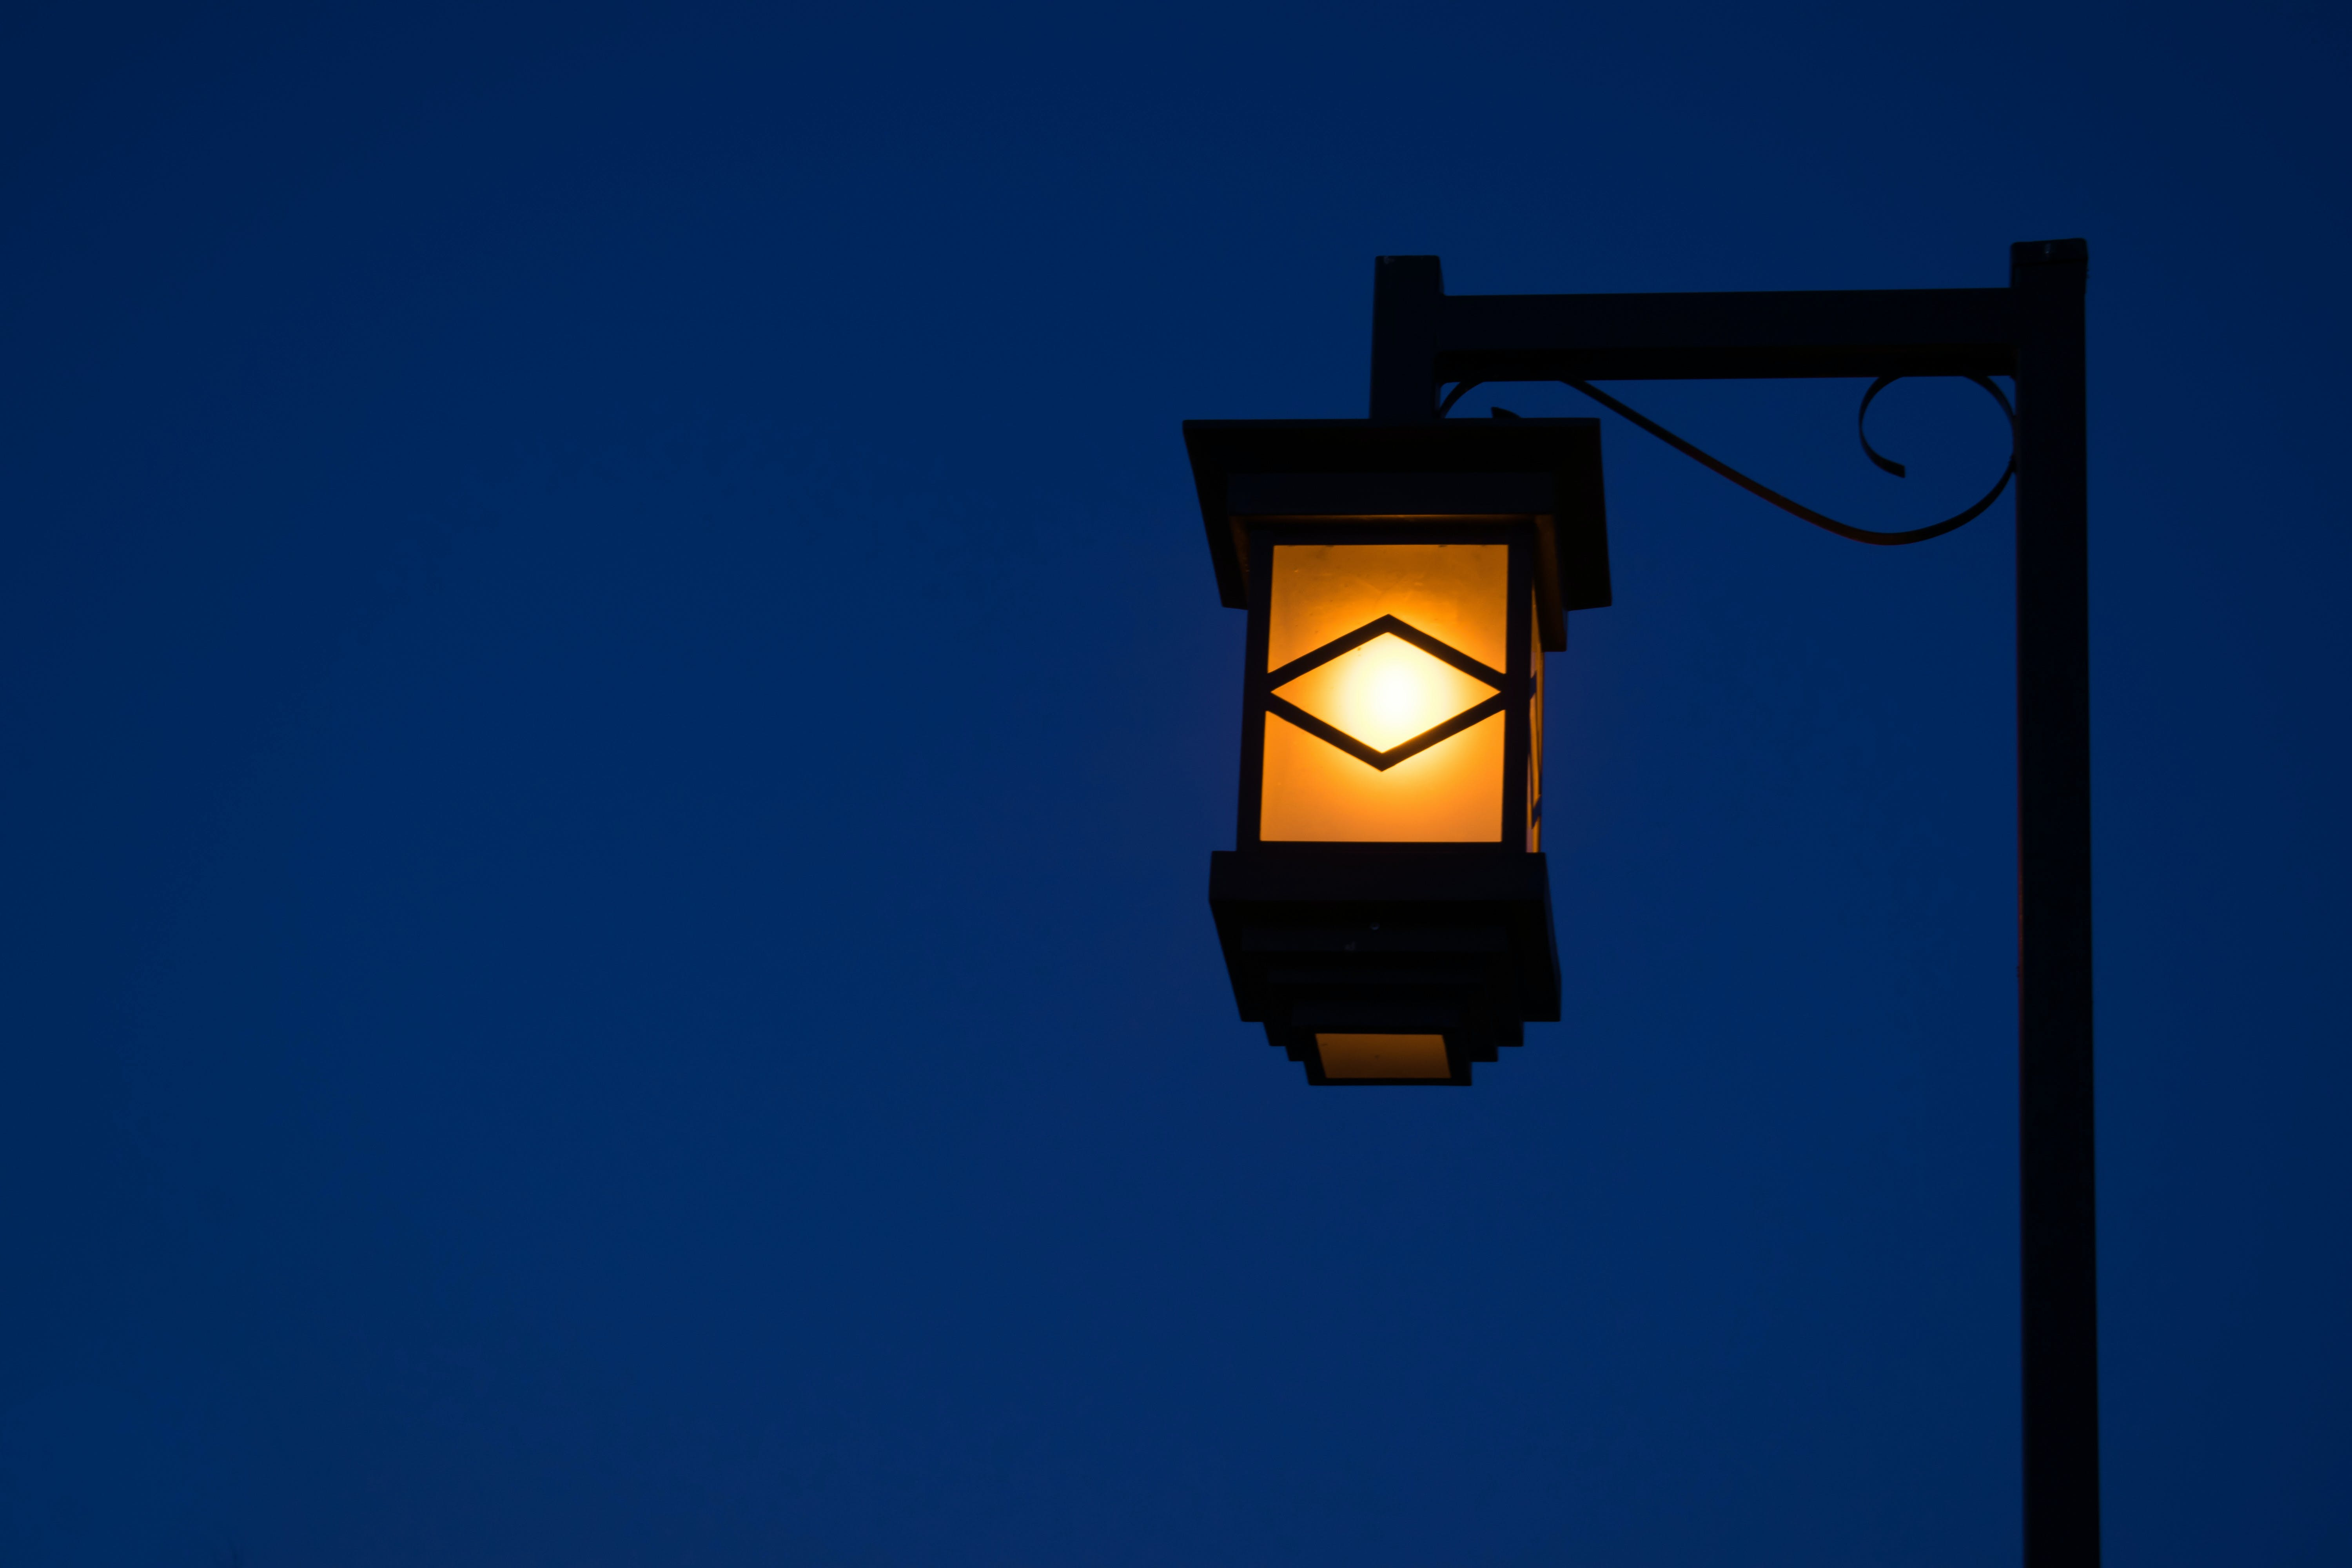 Black Street Lamp Turned on during Night